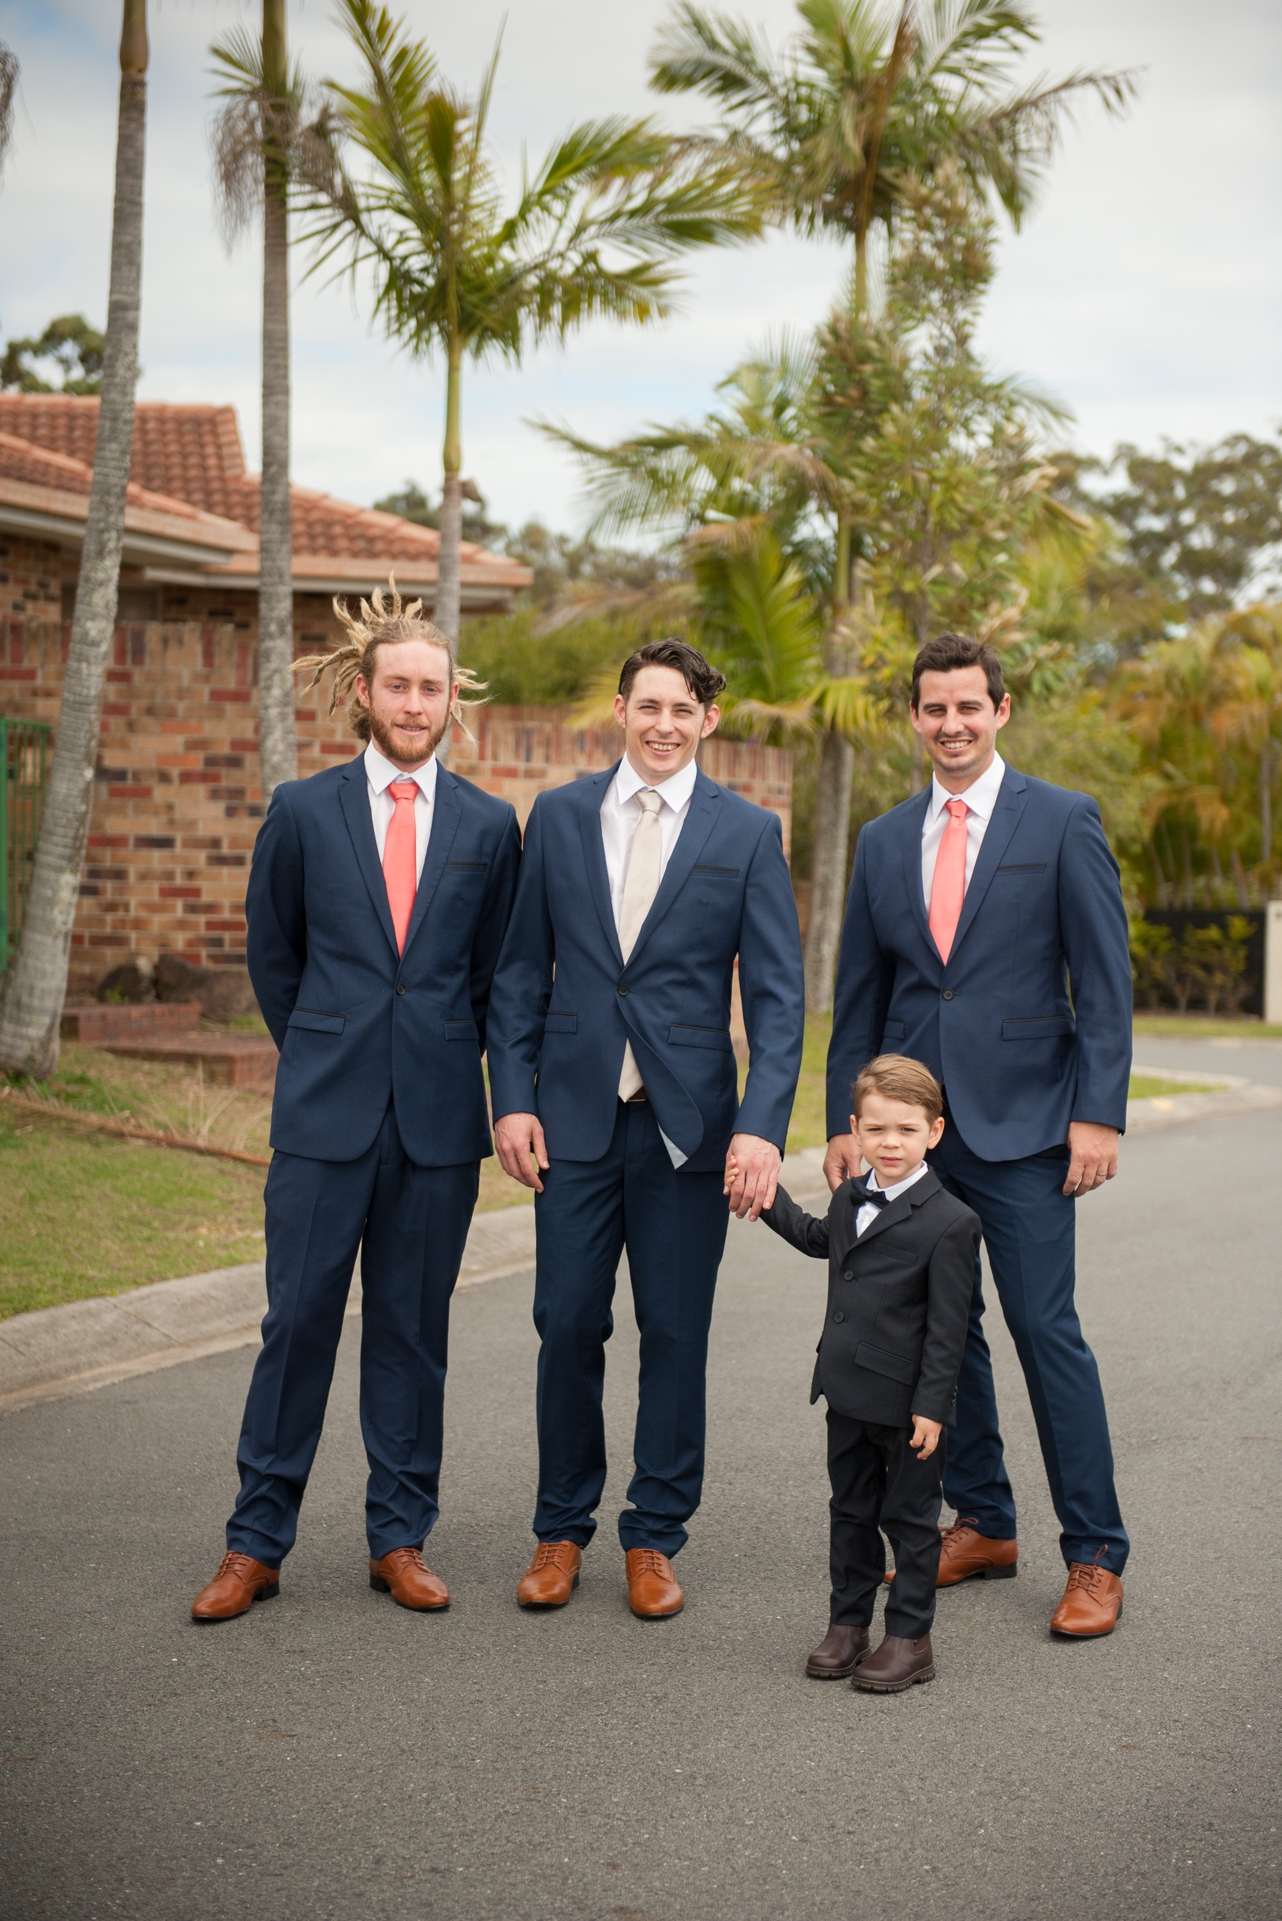 Groom_standing_with_his_paigeboy_and_groomsmen